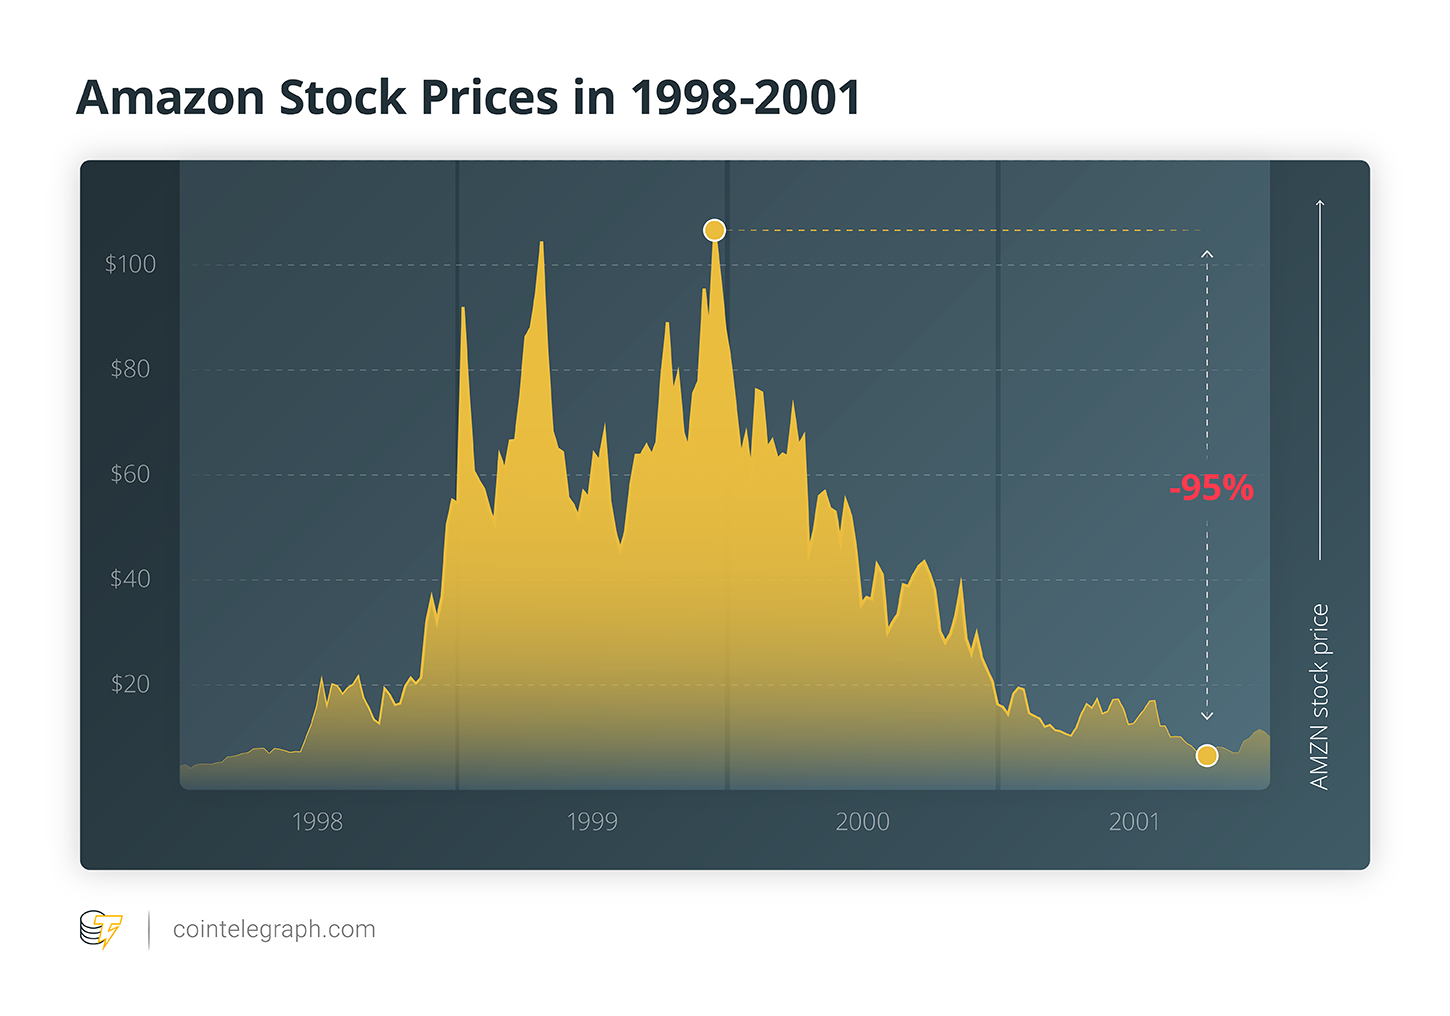 Amazon Stock Prices in 1998-2001